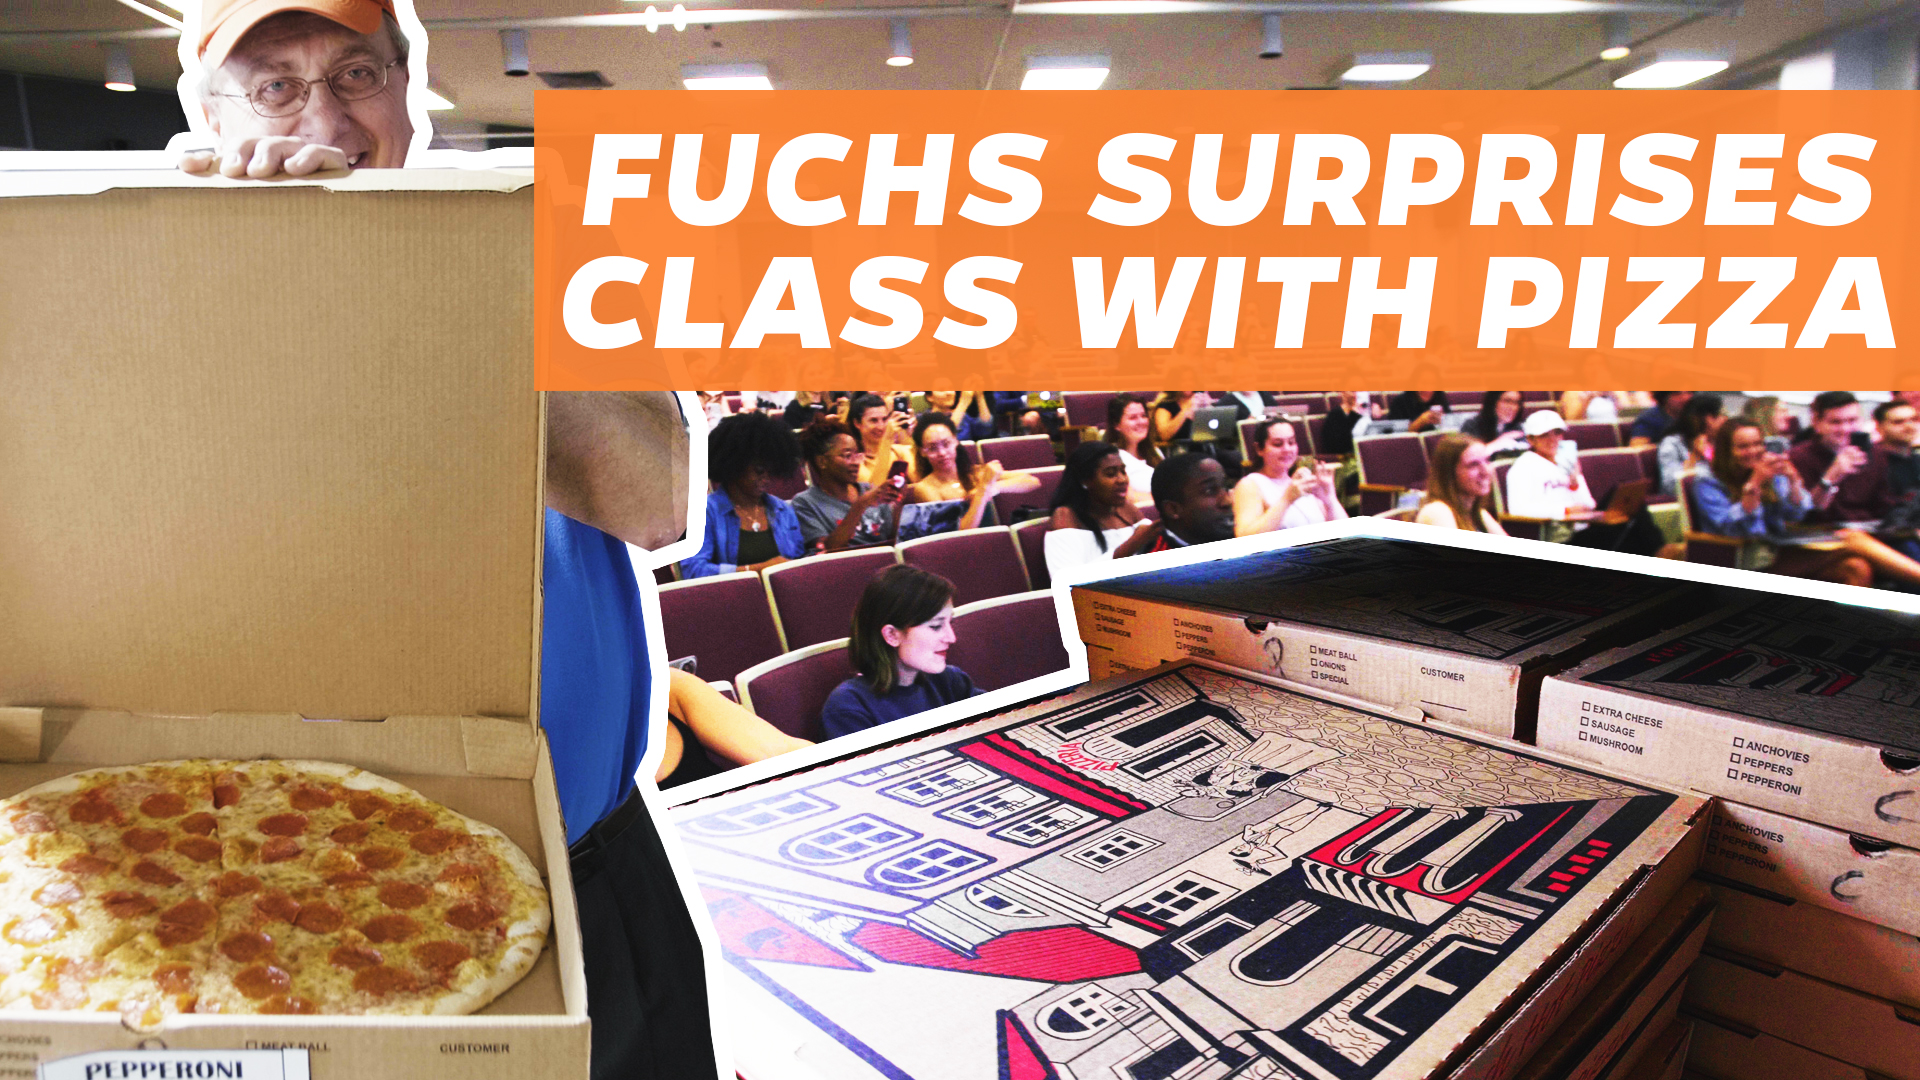 fuchs-surprise-thumbnail.jpg